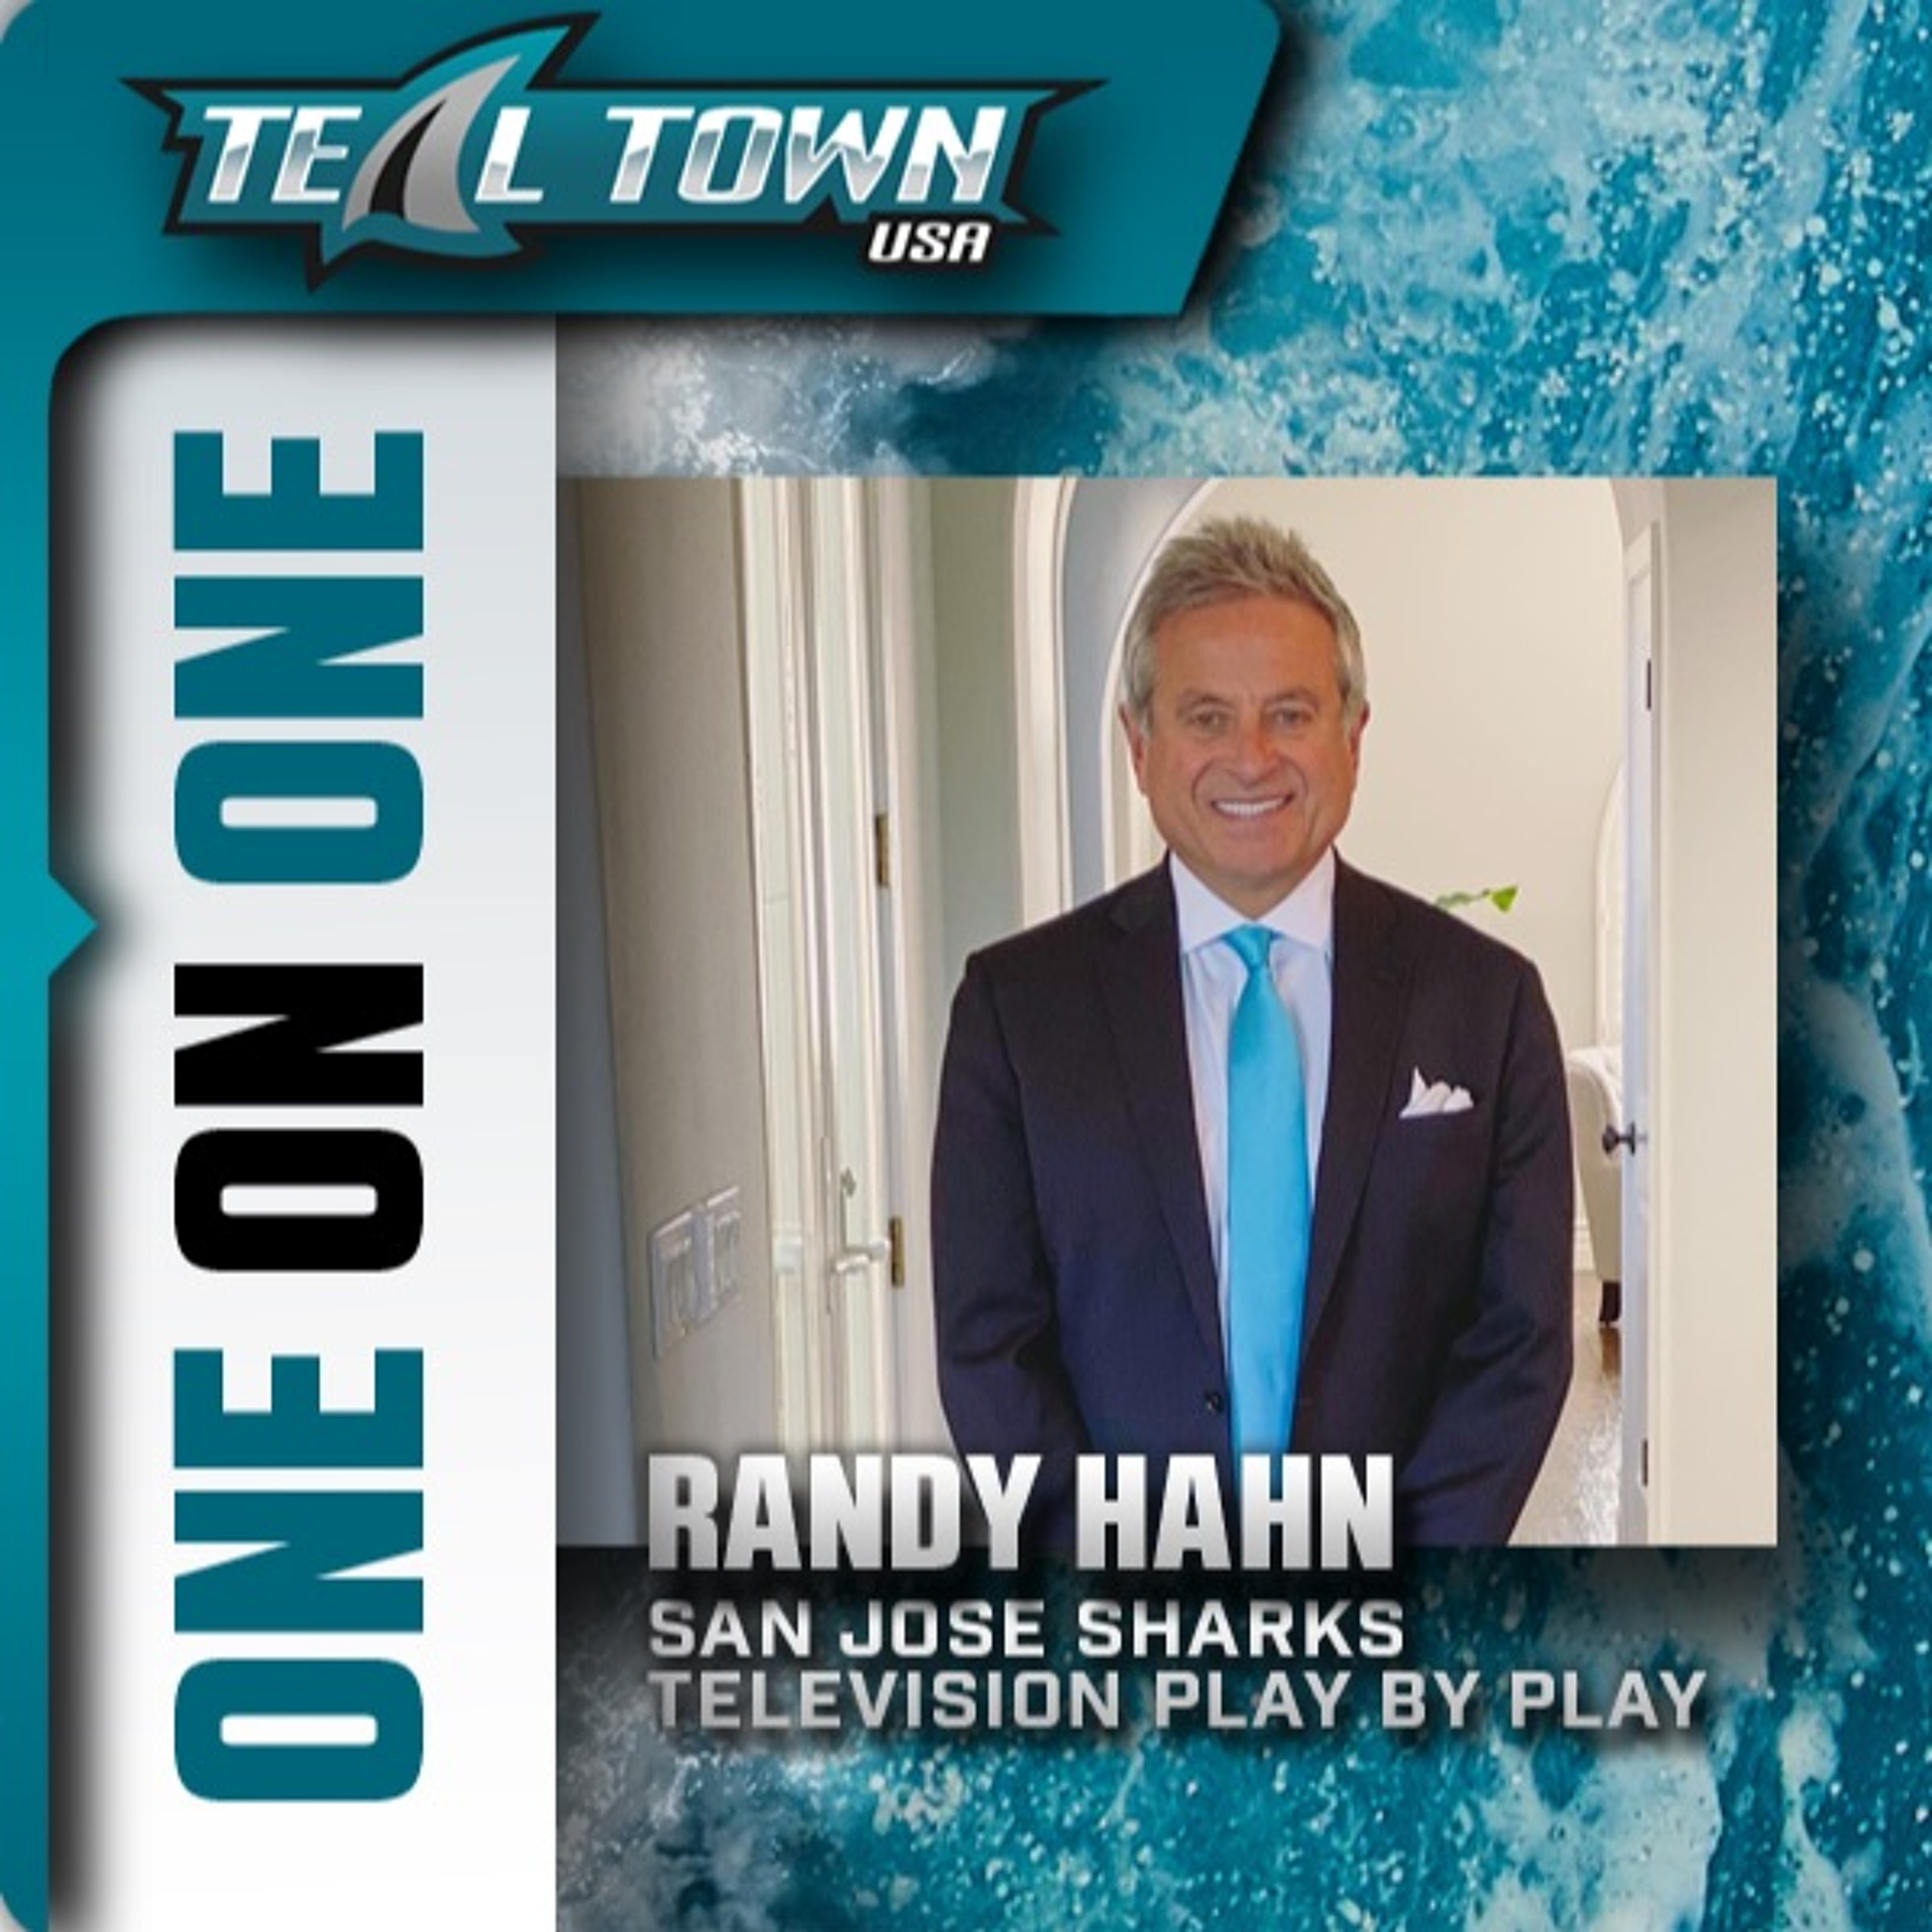 One On One With Randy Hahn - San Jose Sharks Television Play By Play - 10/14/2021